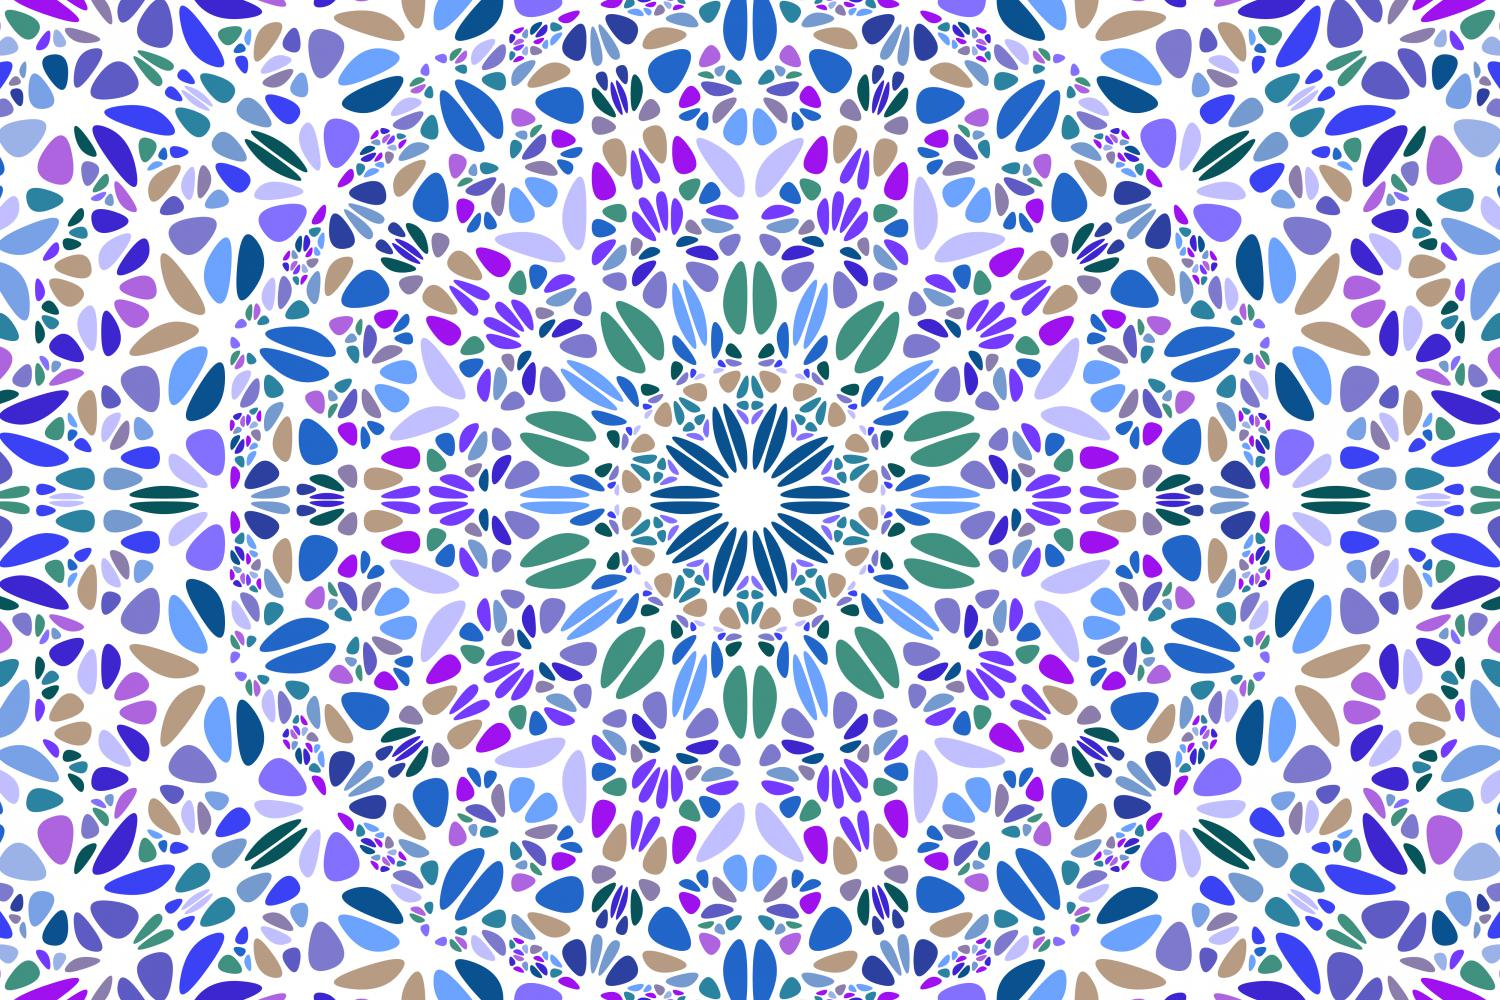 48 Floral Mandala Backgrounds example image 8